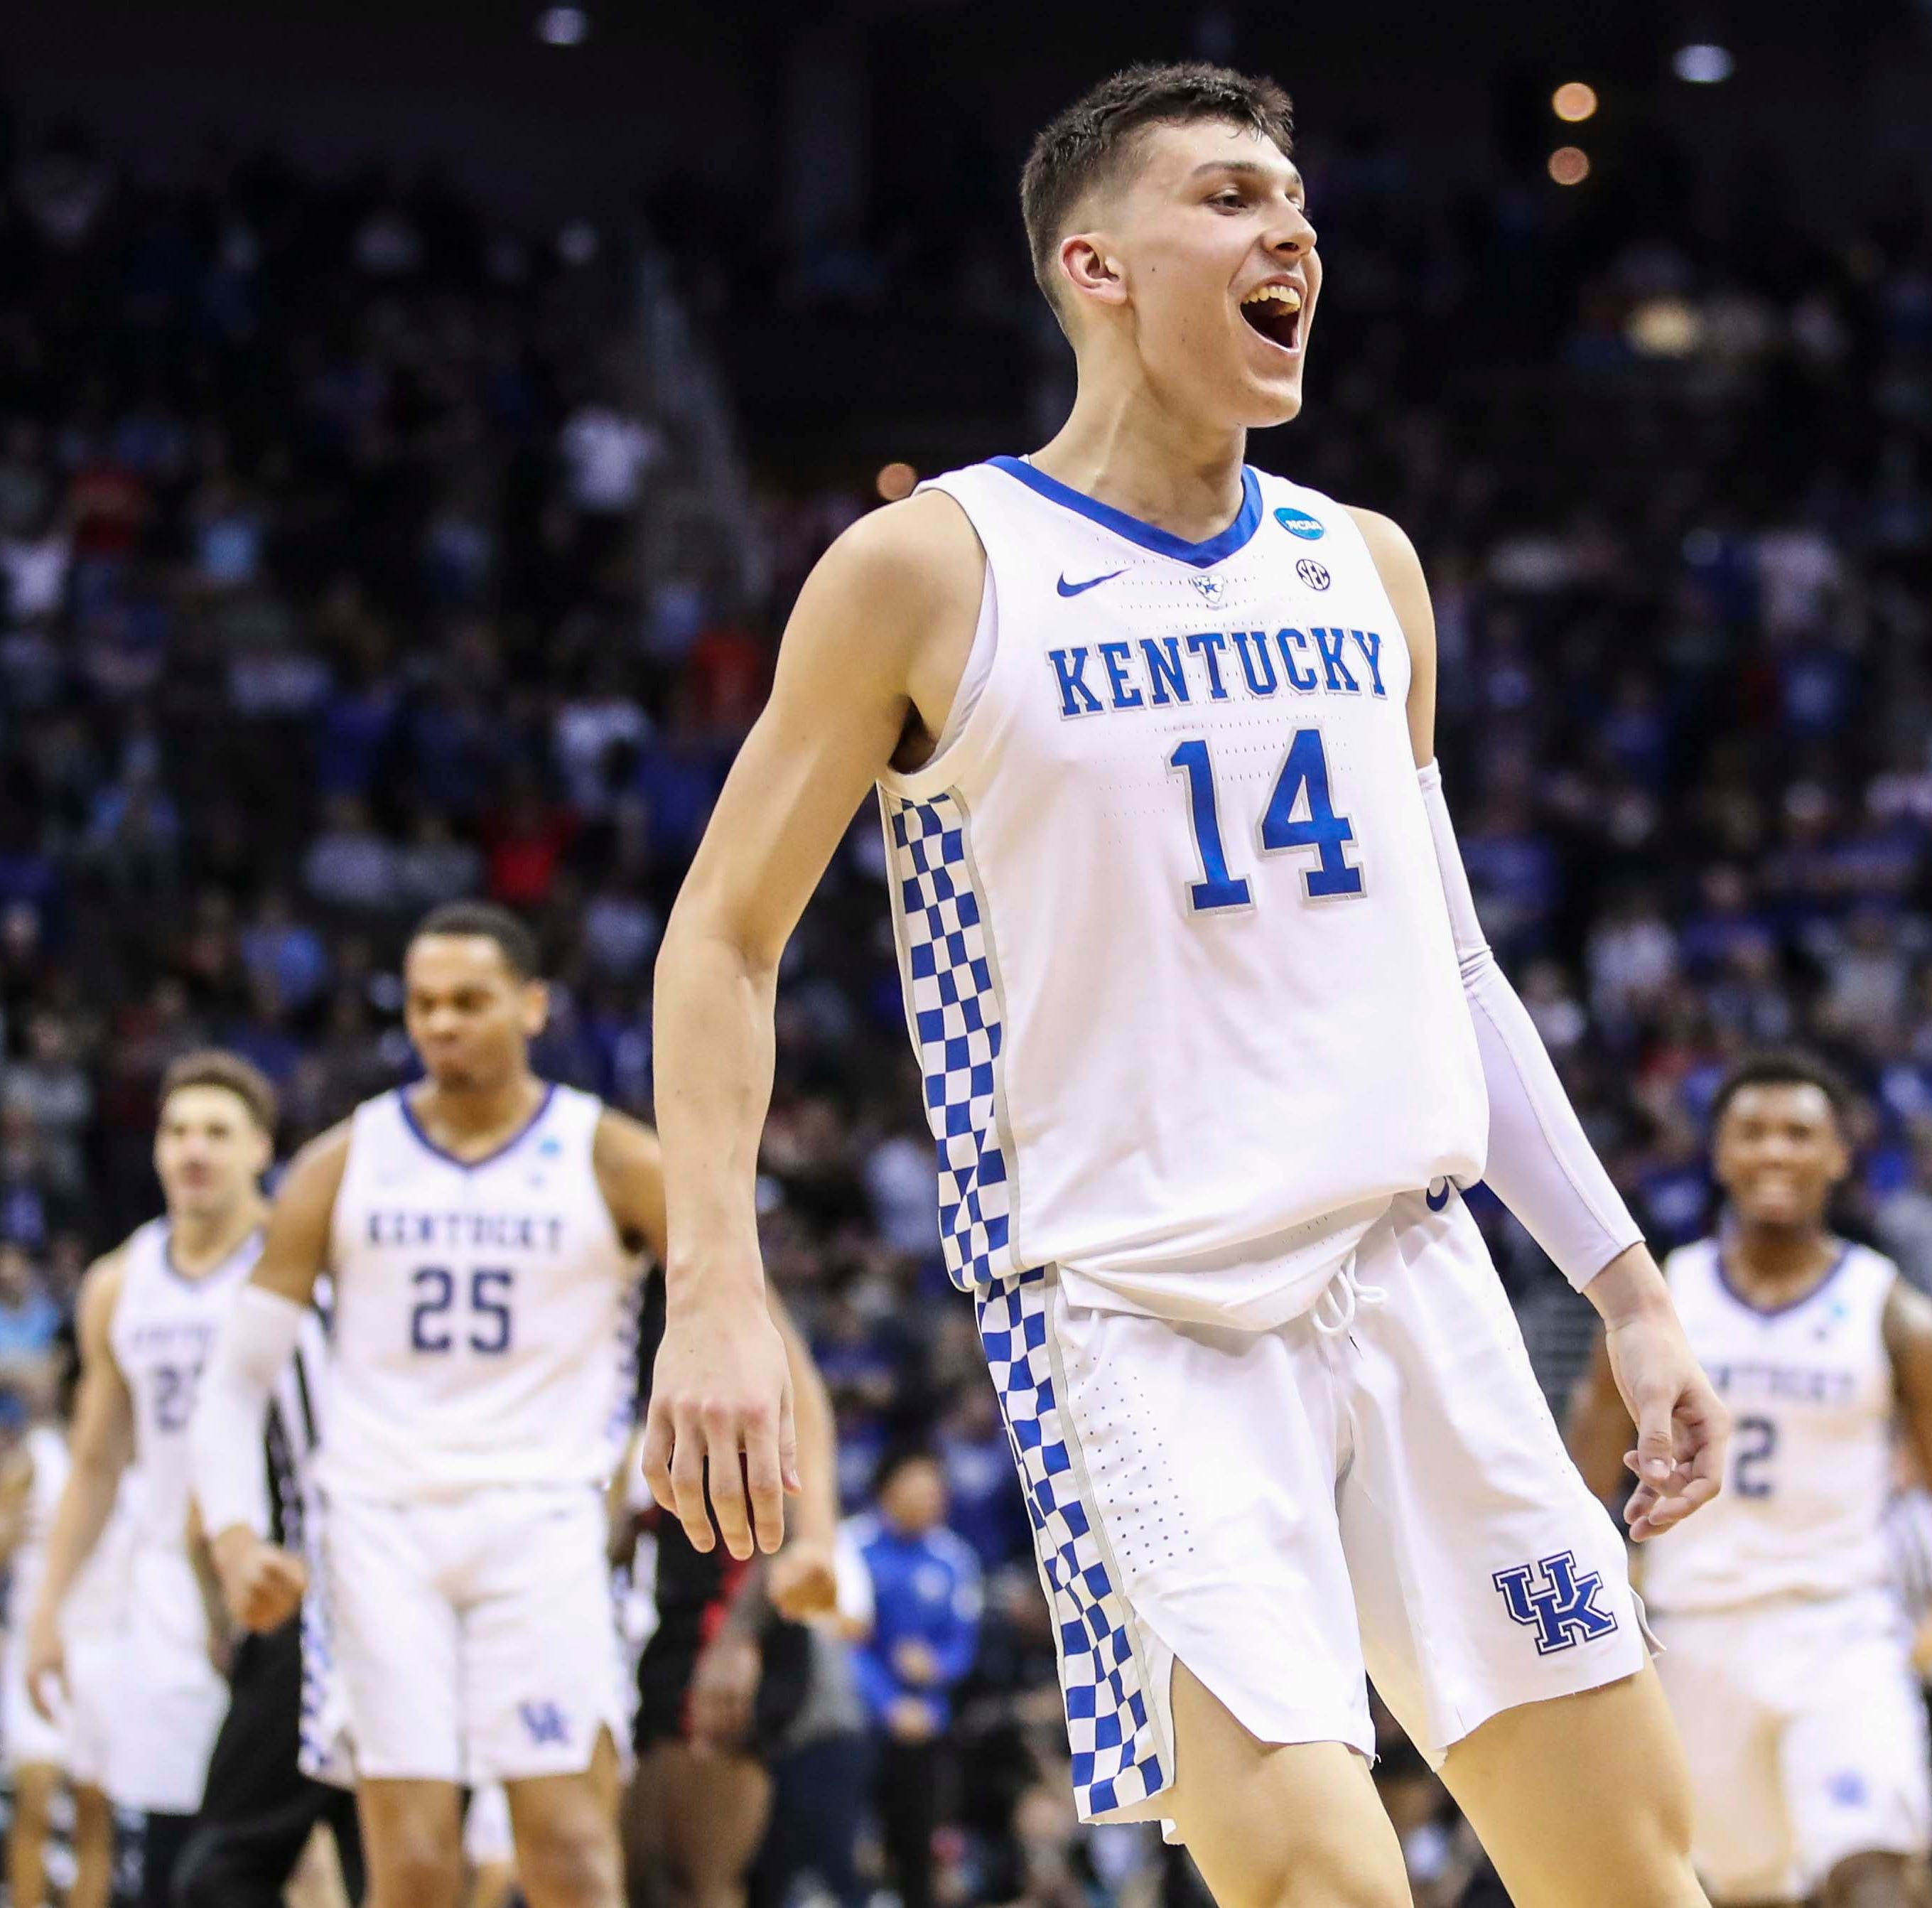 Tyler Herro enters NBA draft but leaves door open for Kentucky return